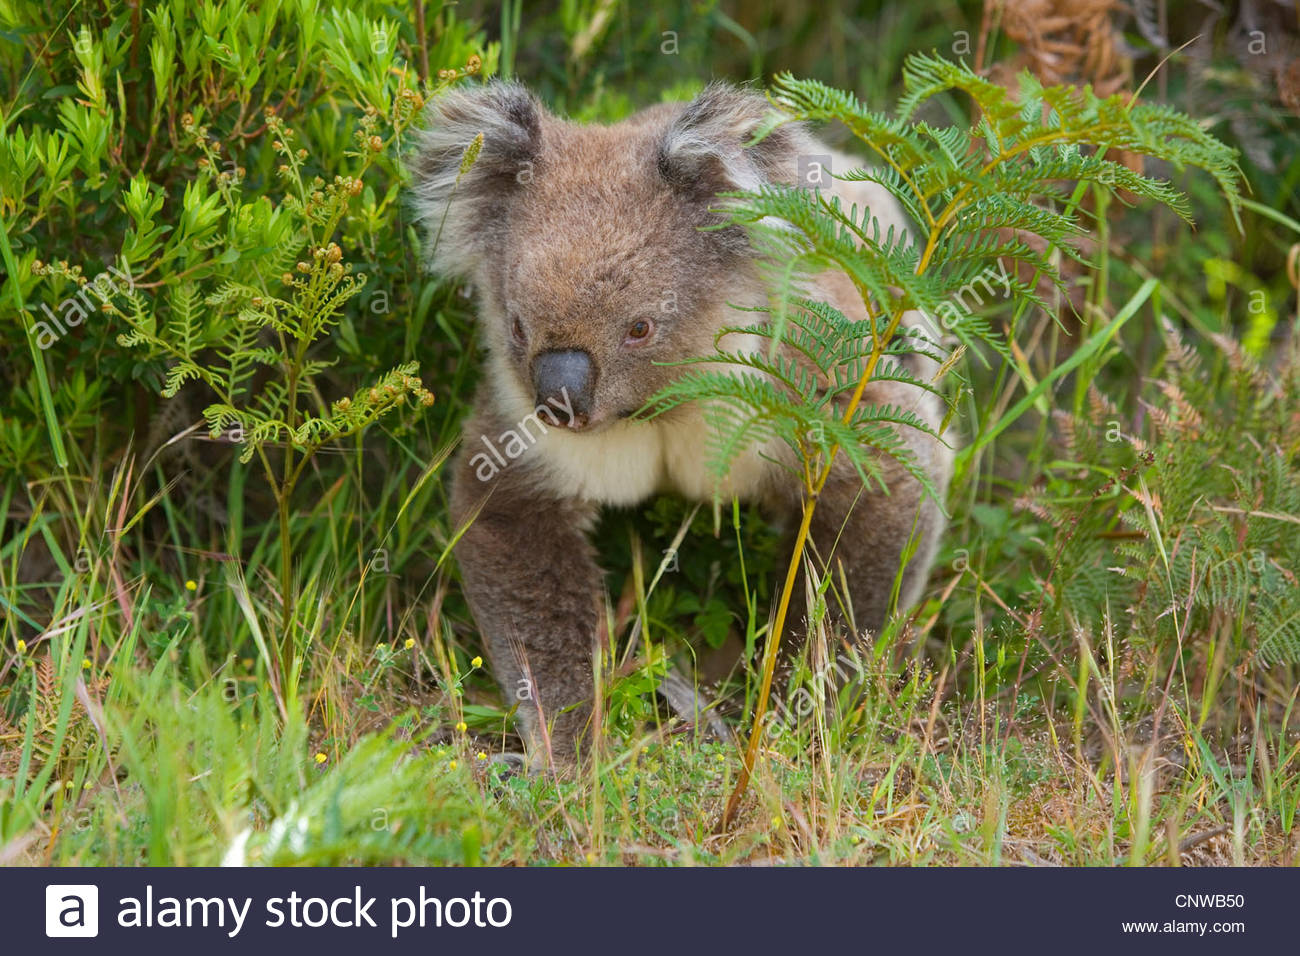 Deadly Animals: 11 Amazing Facts About Koala Bears